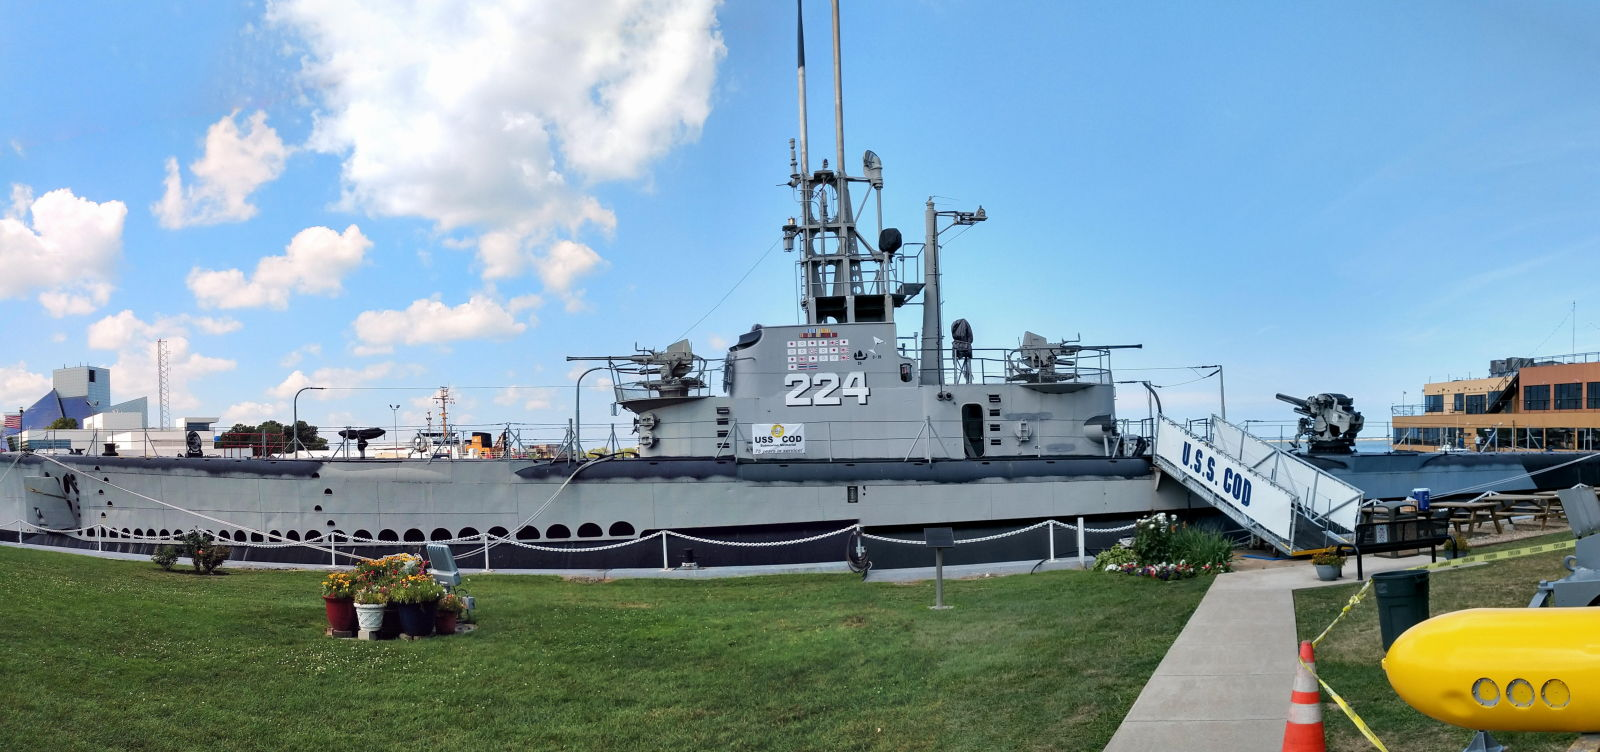 The USS Cod docked at its home in Cleveland, Ohio